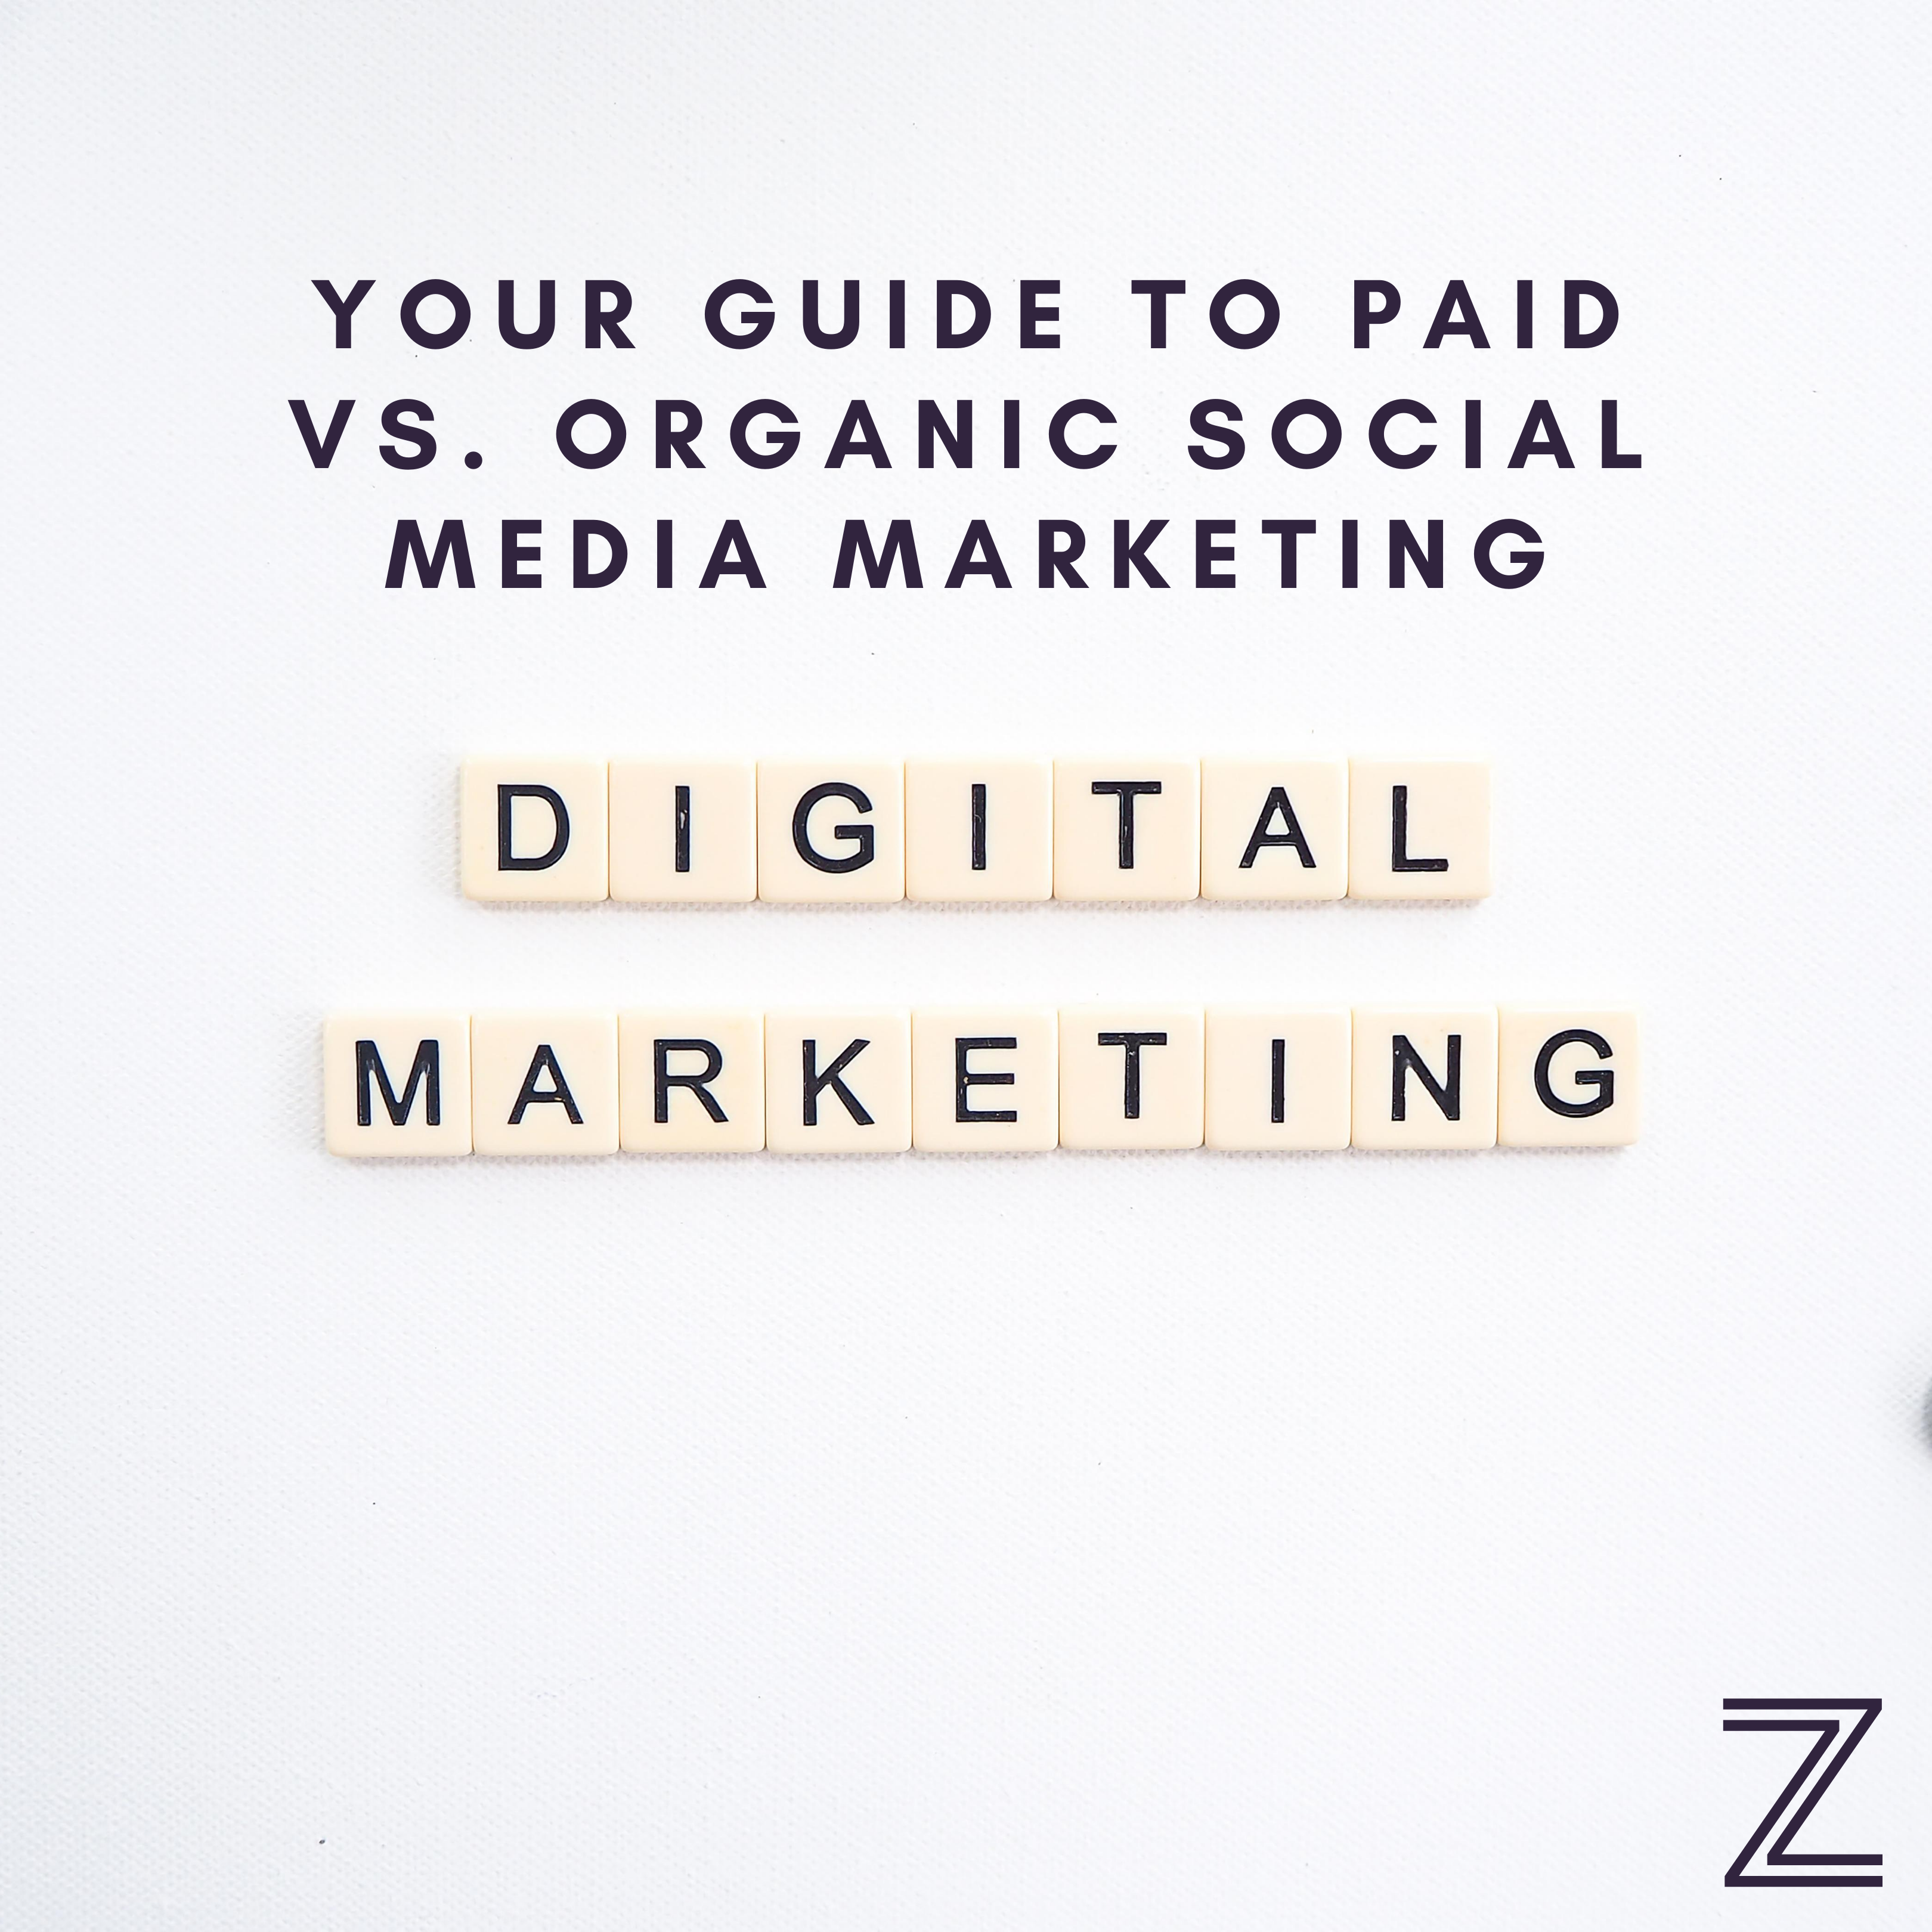 Your Guide to Paid vs. Organic Social Media Marketing